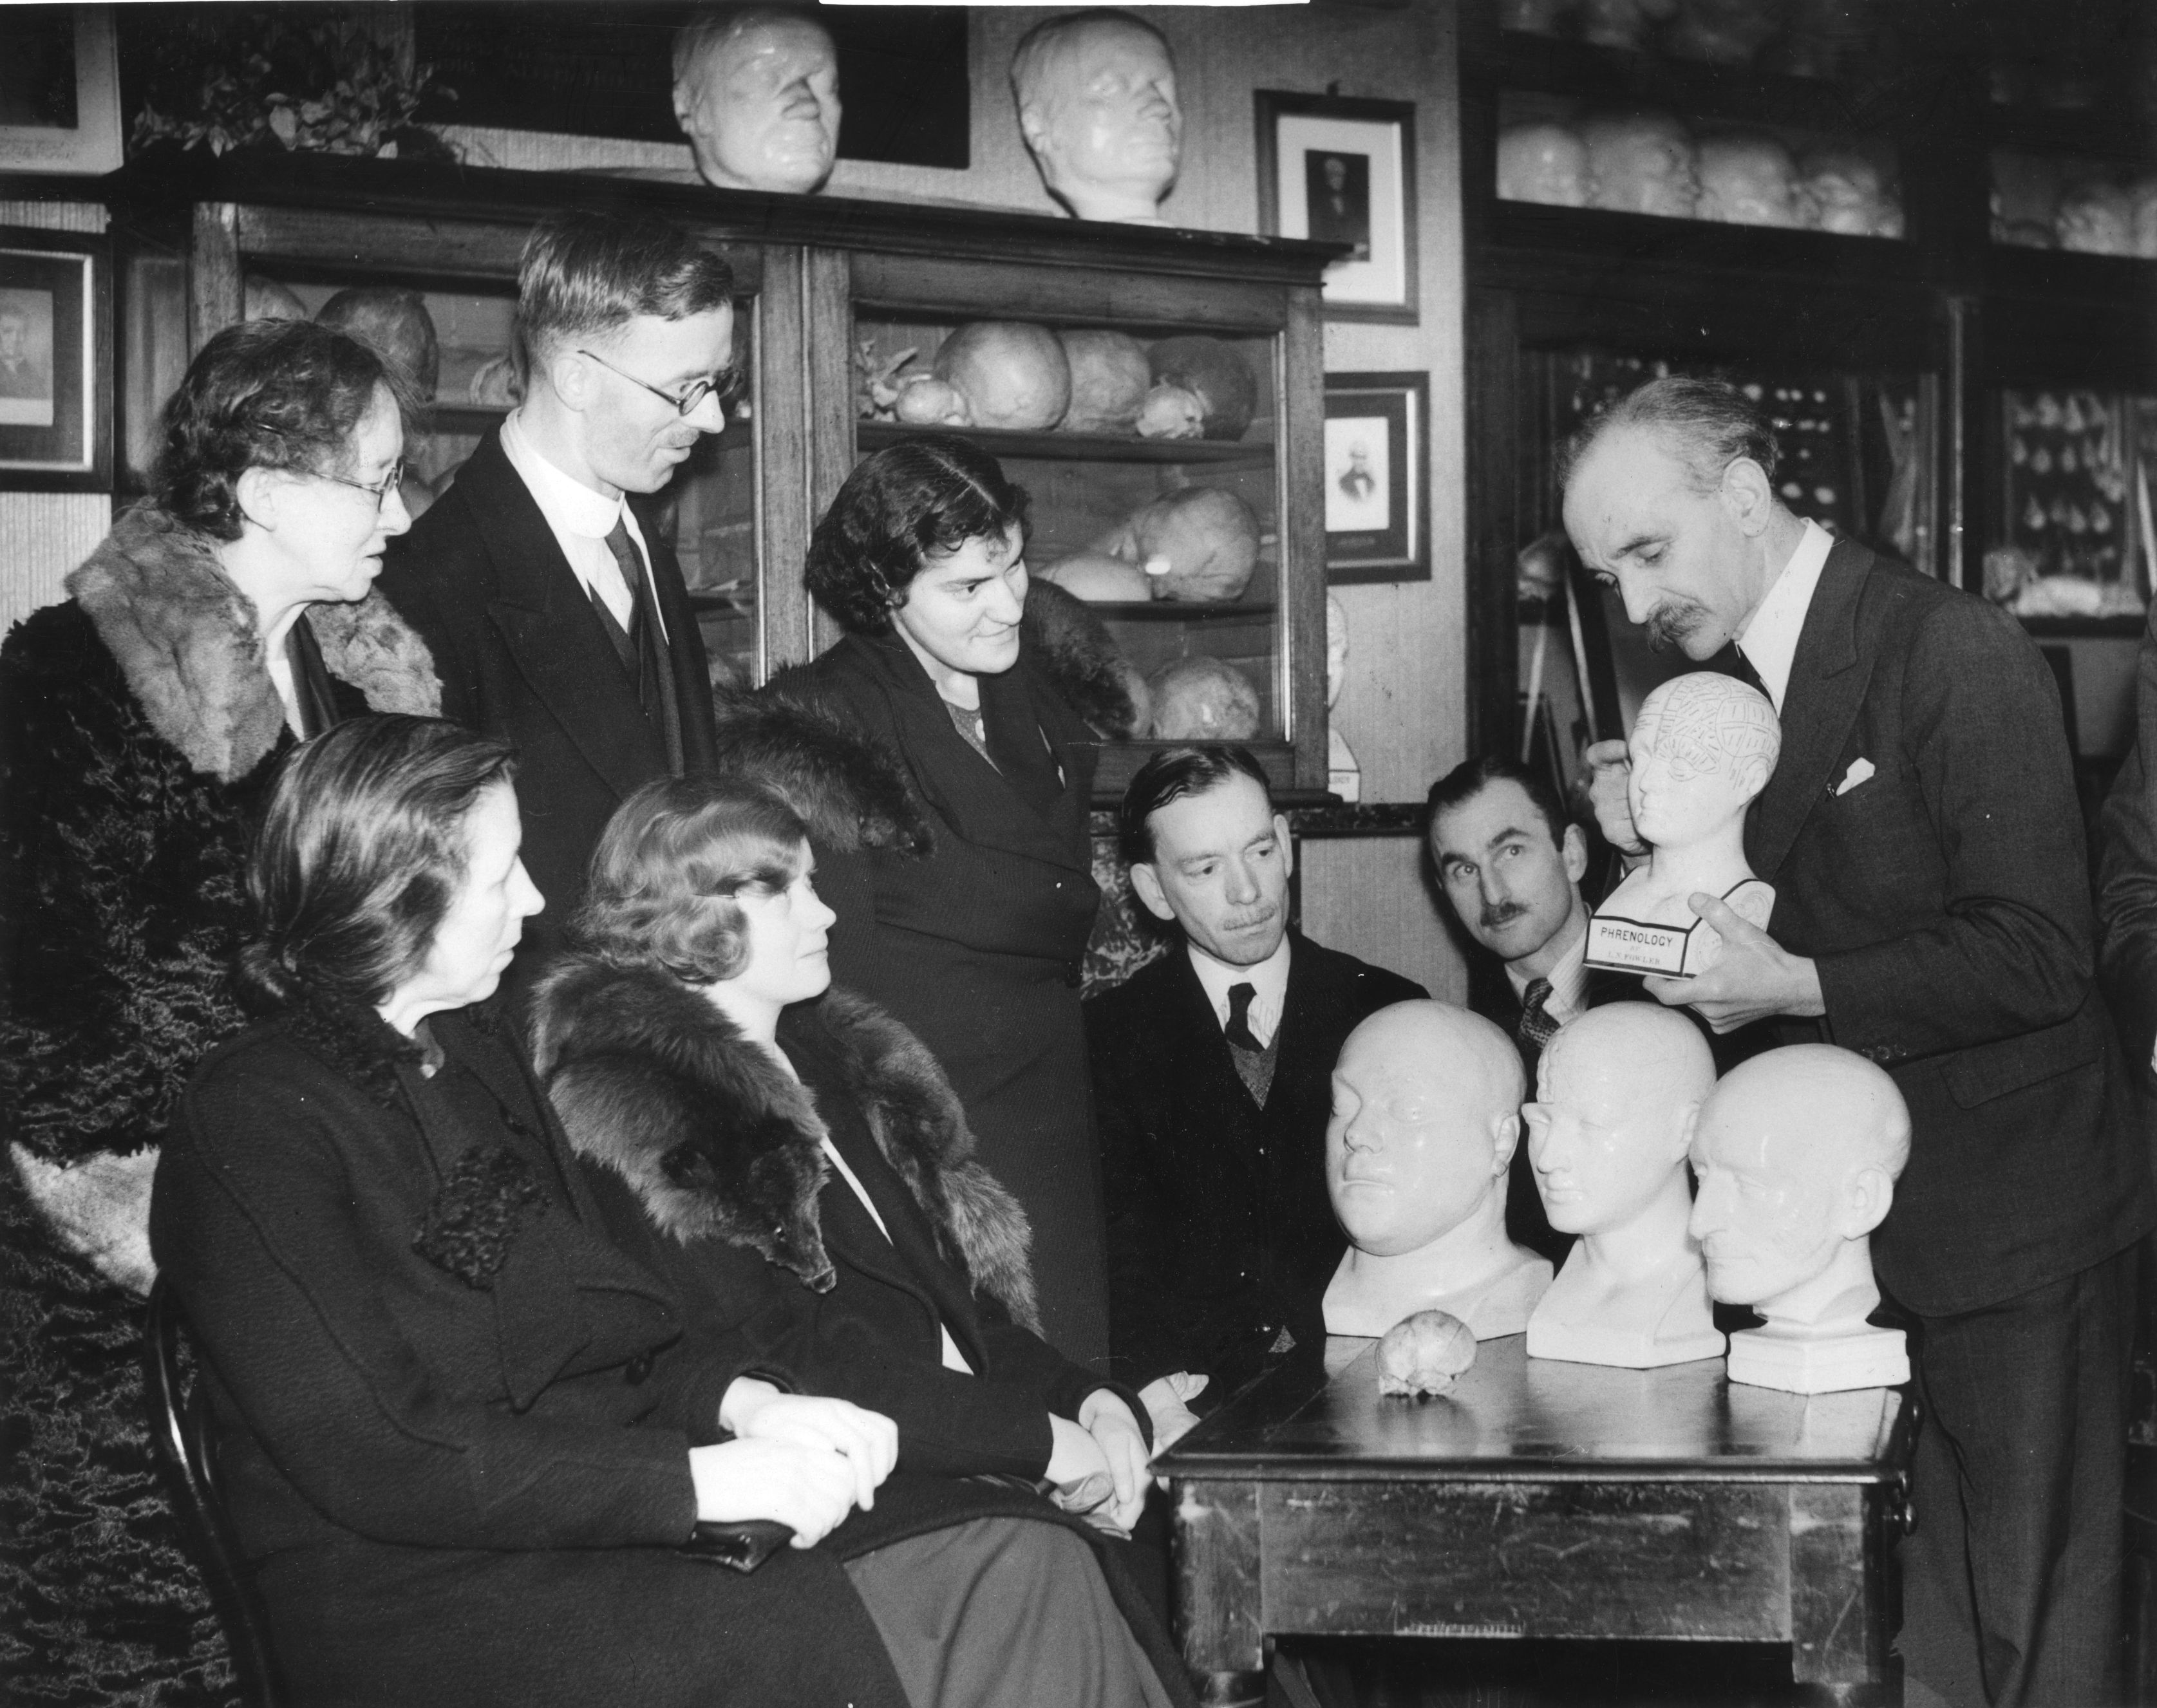 27th January 1937:  J L Barr demonstrating phrenology techniques during a  course which teaches pupils to 'read' the bumps on a person's head.  (Photo by Reg Speller/Fox Photos/Getty Images)